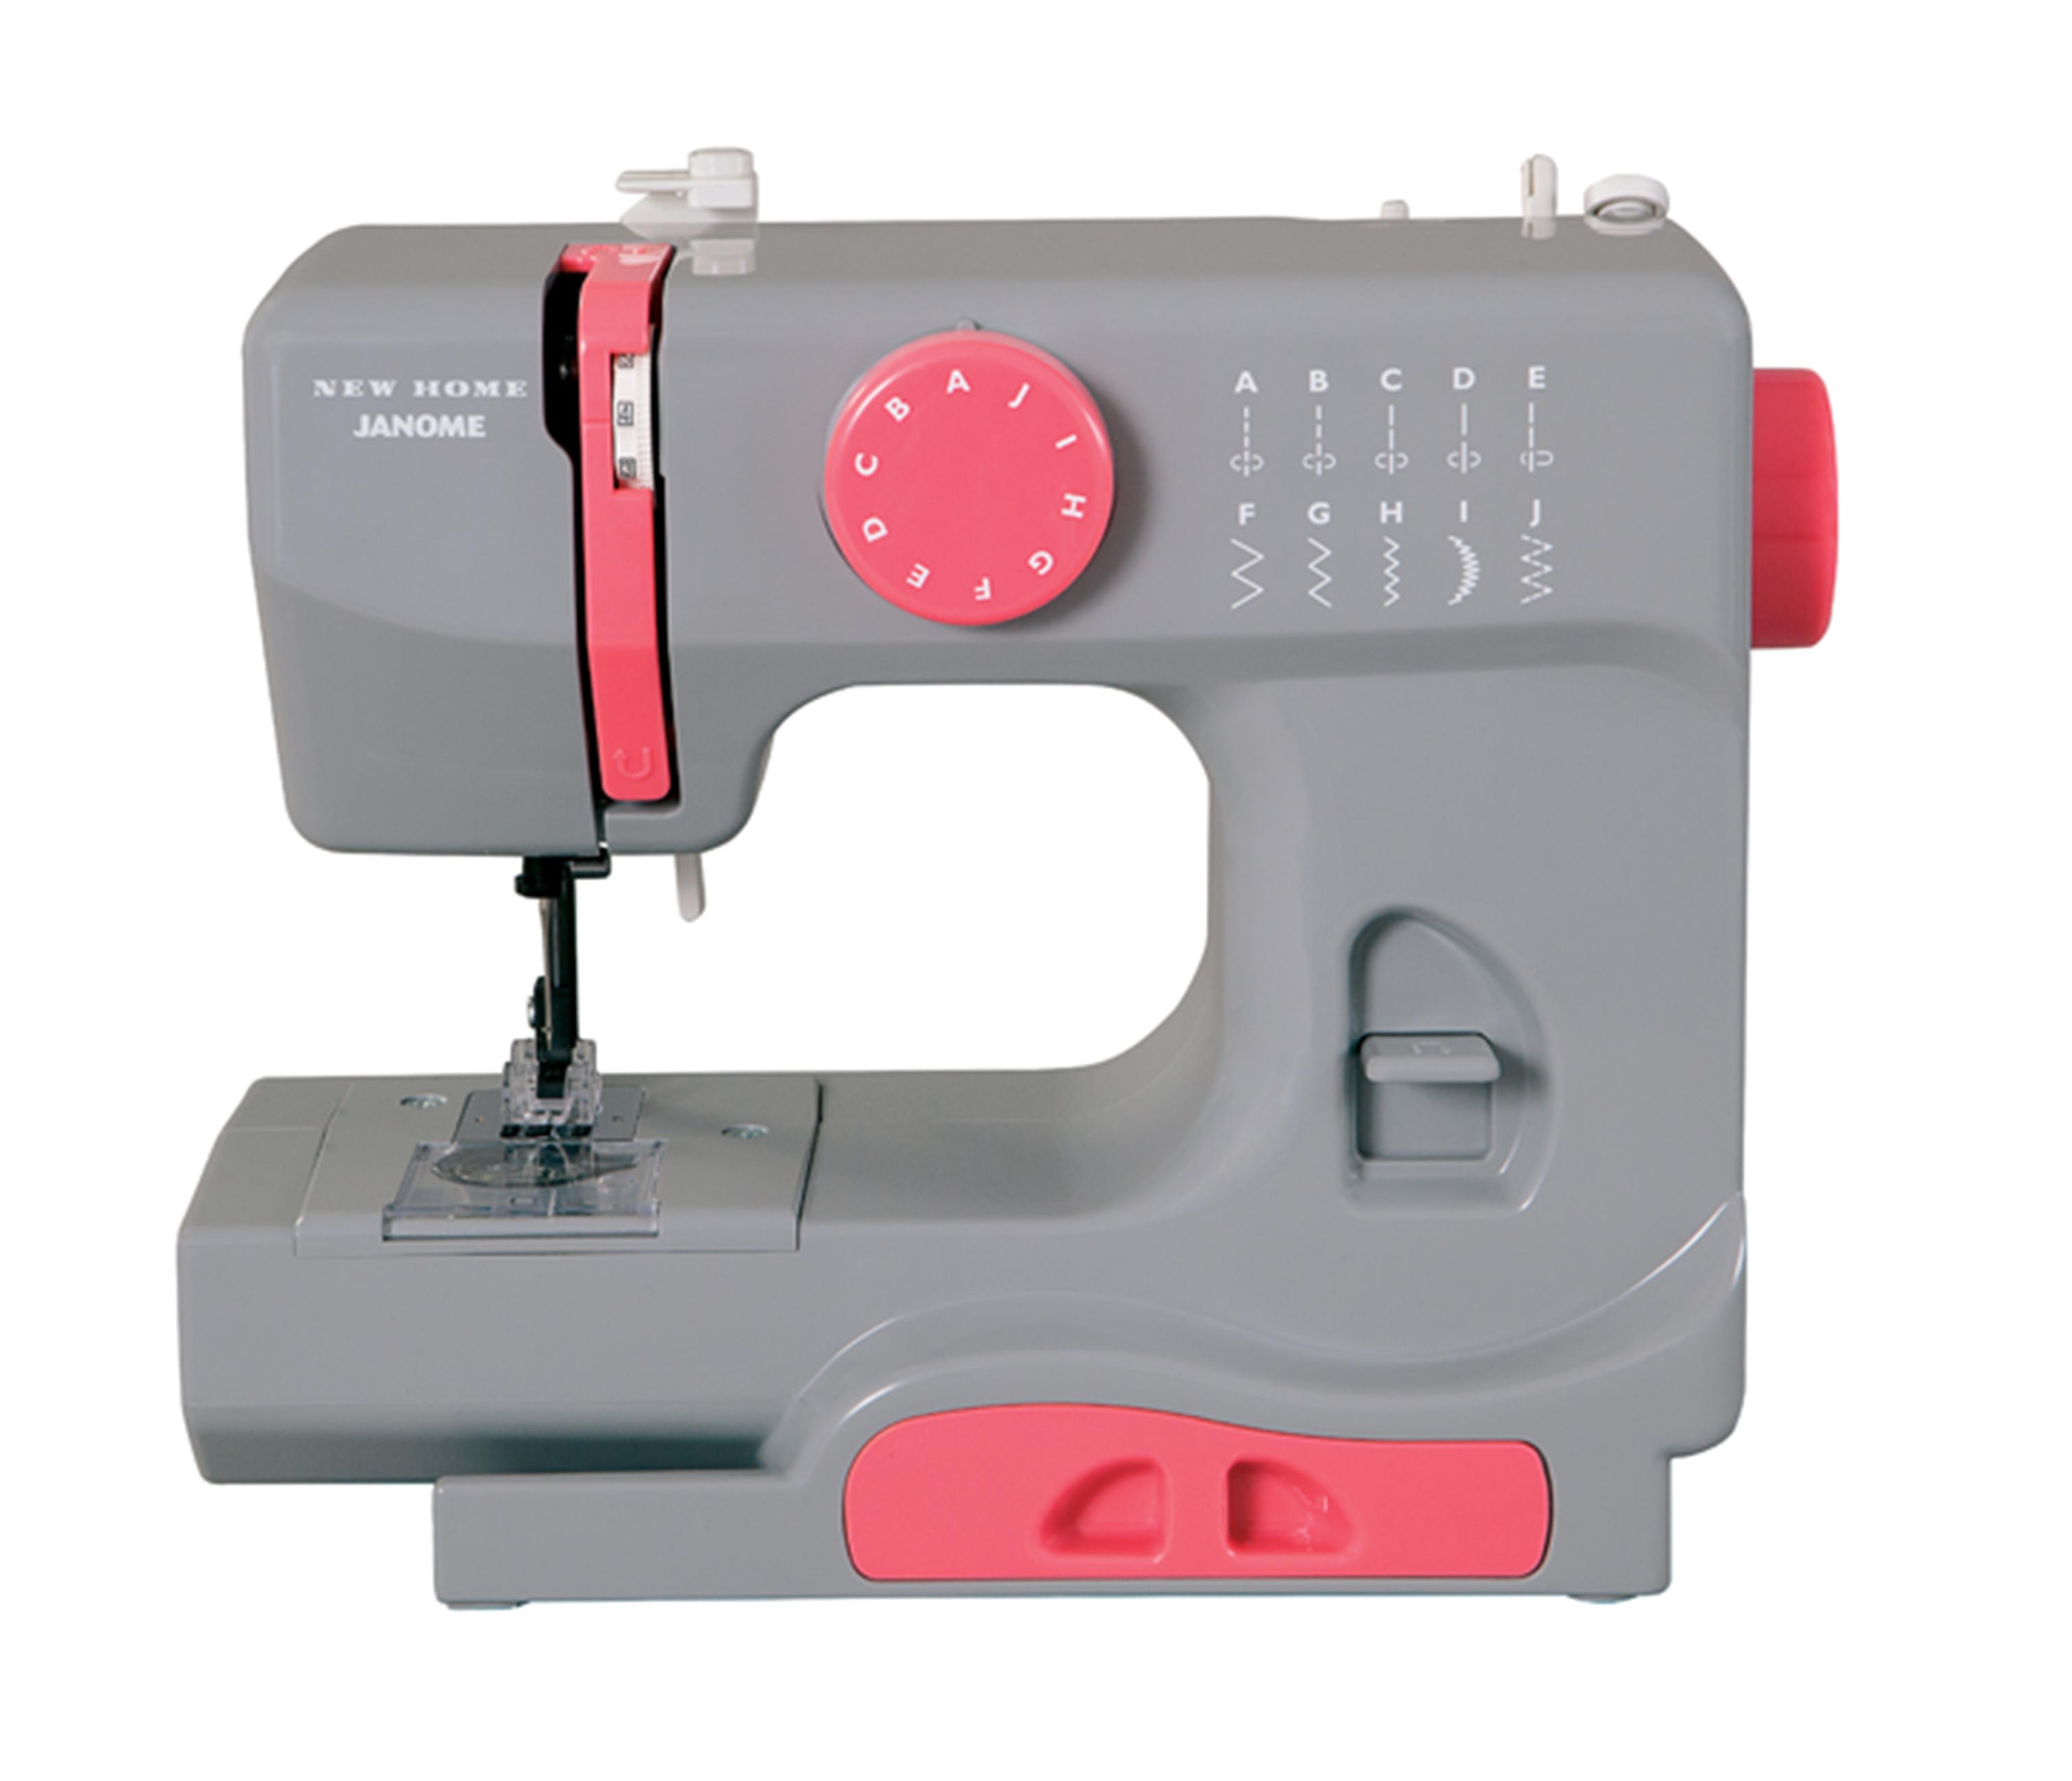 Janome New Home Graceful Gray Portable From Jo Ann Fabric And